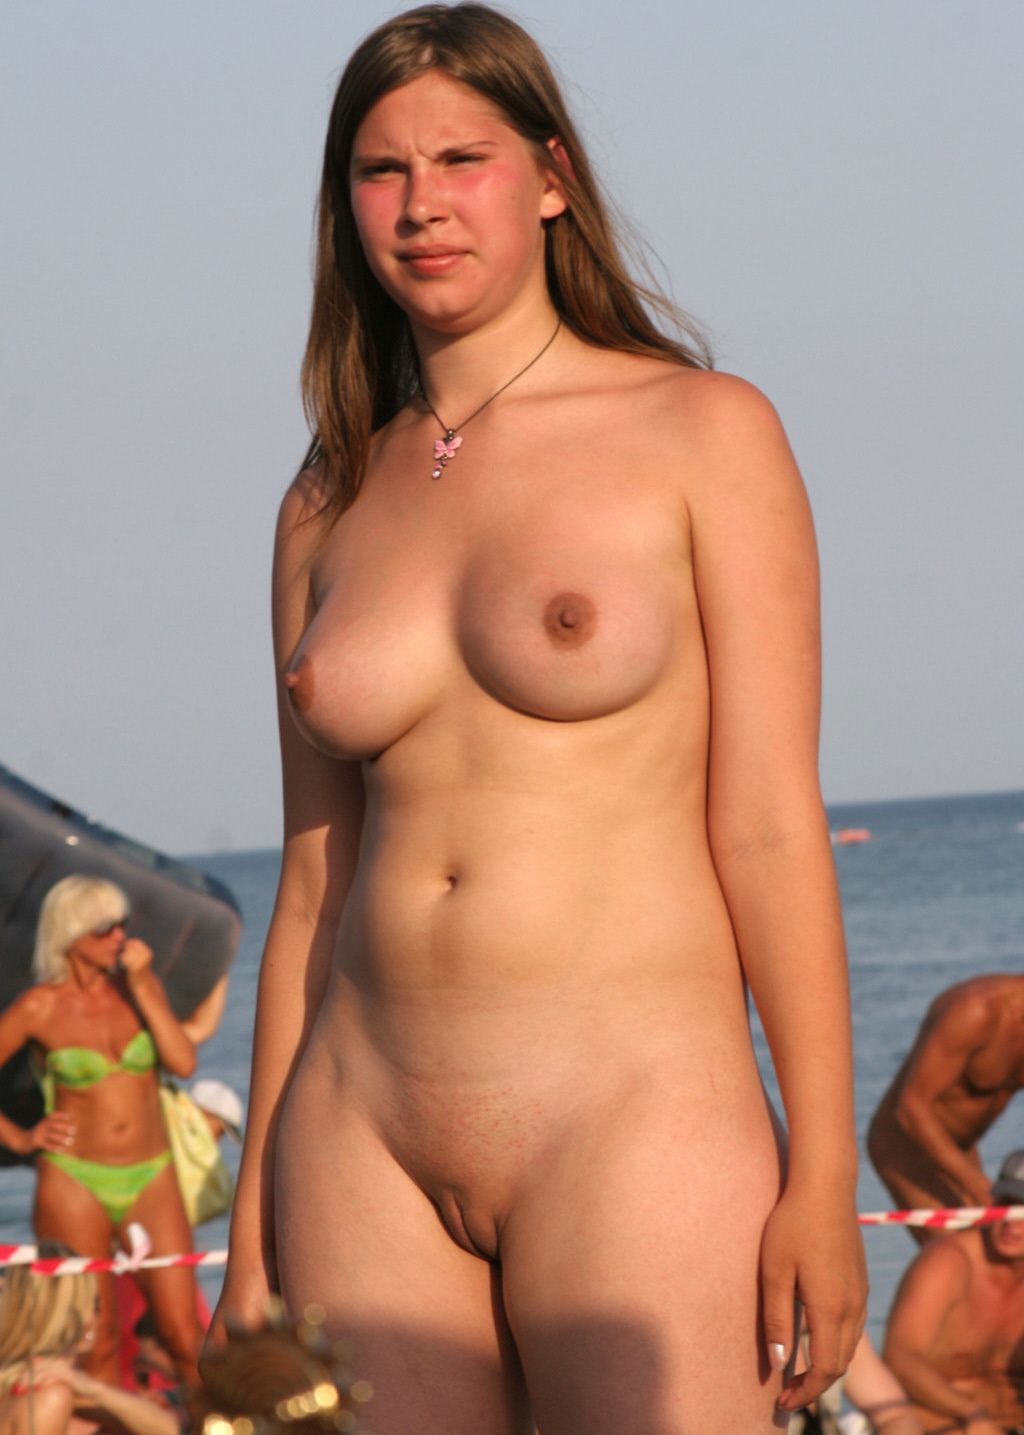 Young lady on nude beach, senior citizen nudes